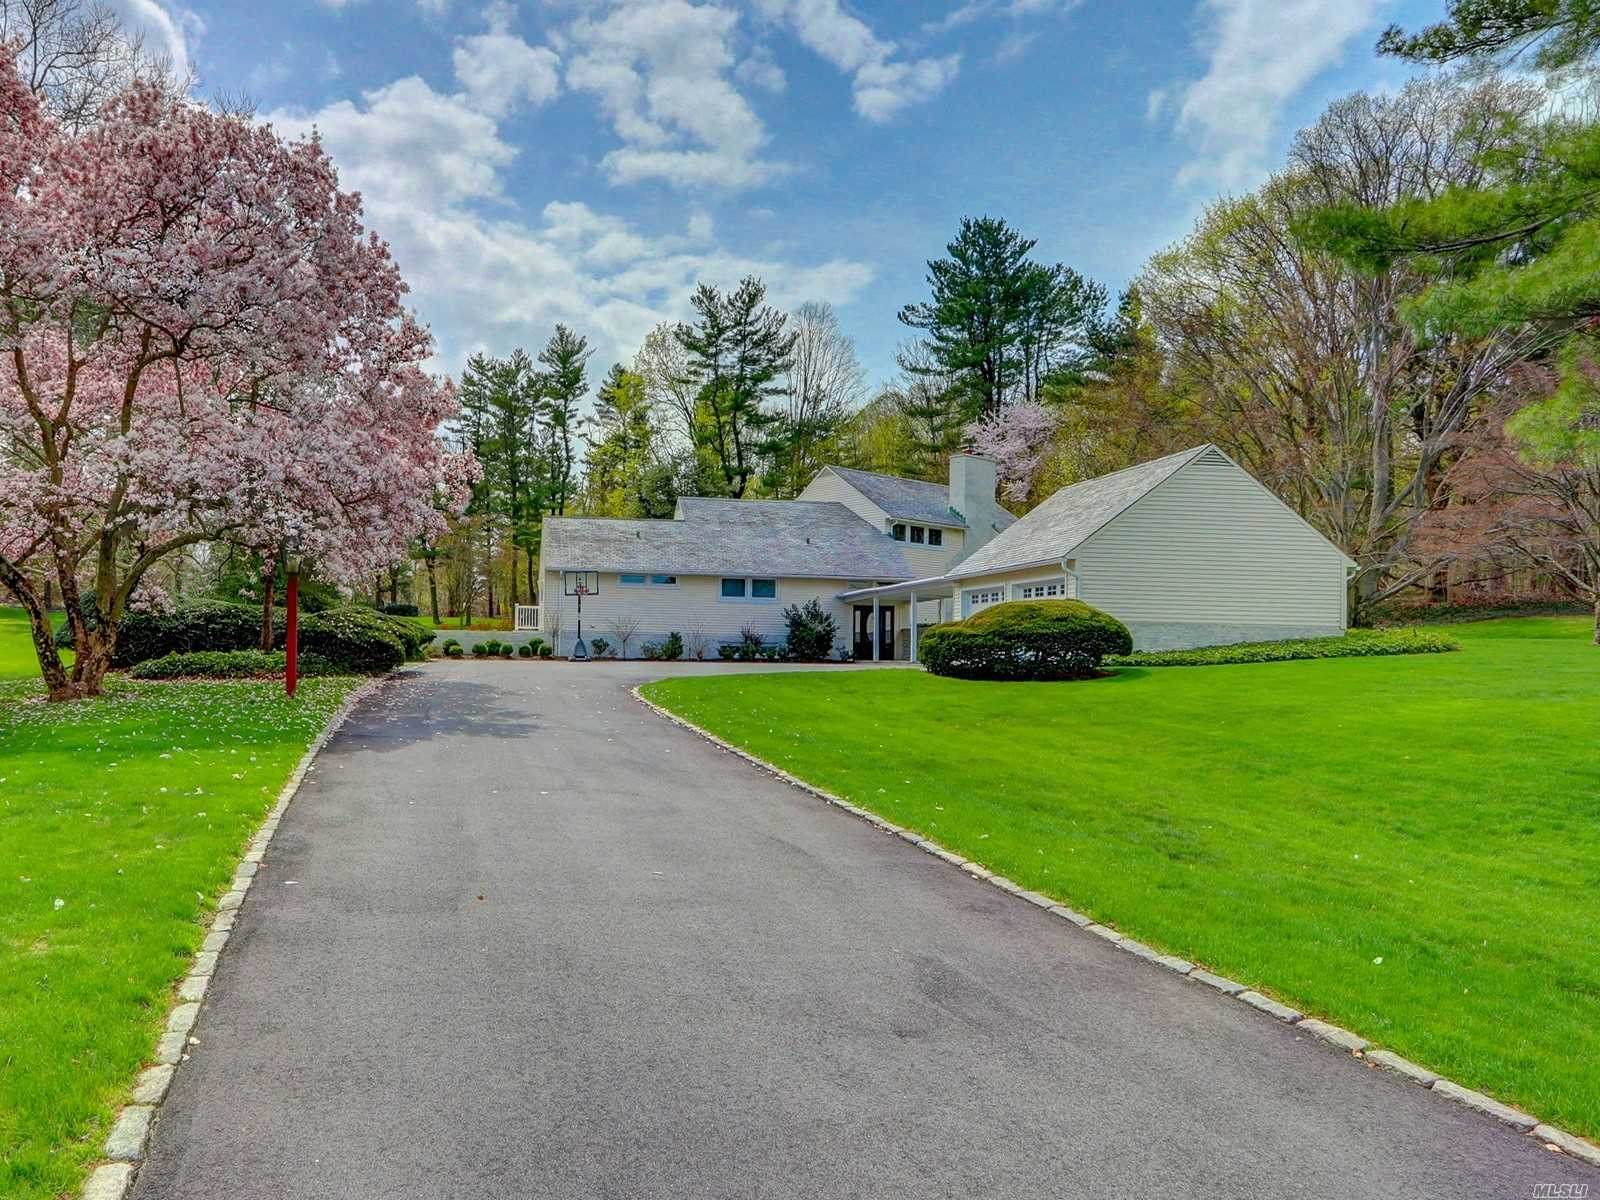 Stunning Newly Furnished and Decorated by Superb Architectural Designer, this beauty is the epitomy of peaceful living, boasting unique details, from the light and colorful rooms to the dramatic fixtures and eyecatching decor. A Must See if you are looking for a Newly Decorated and Furnished Home on 6.55 acres of Rolling Lawns, Sparkling New In-Ground Gunite Pool and the privacy that this all affords you. A Very Special Home!